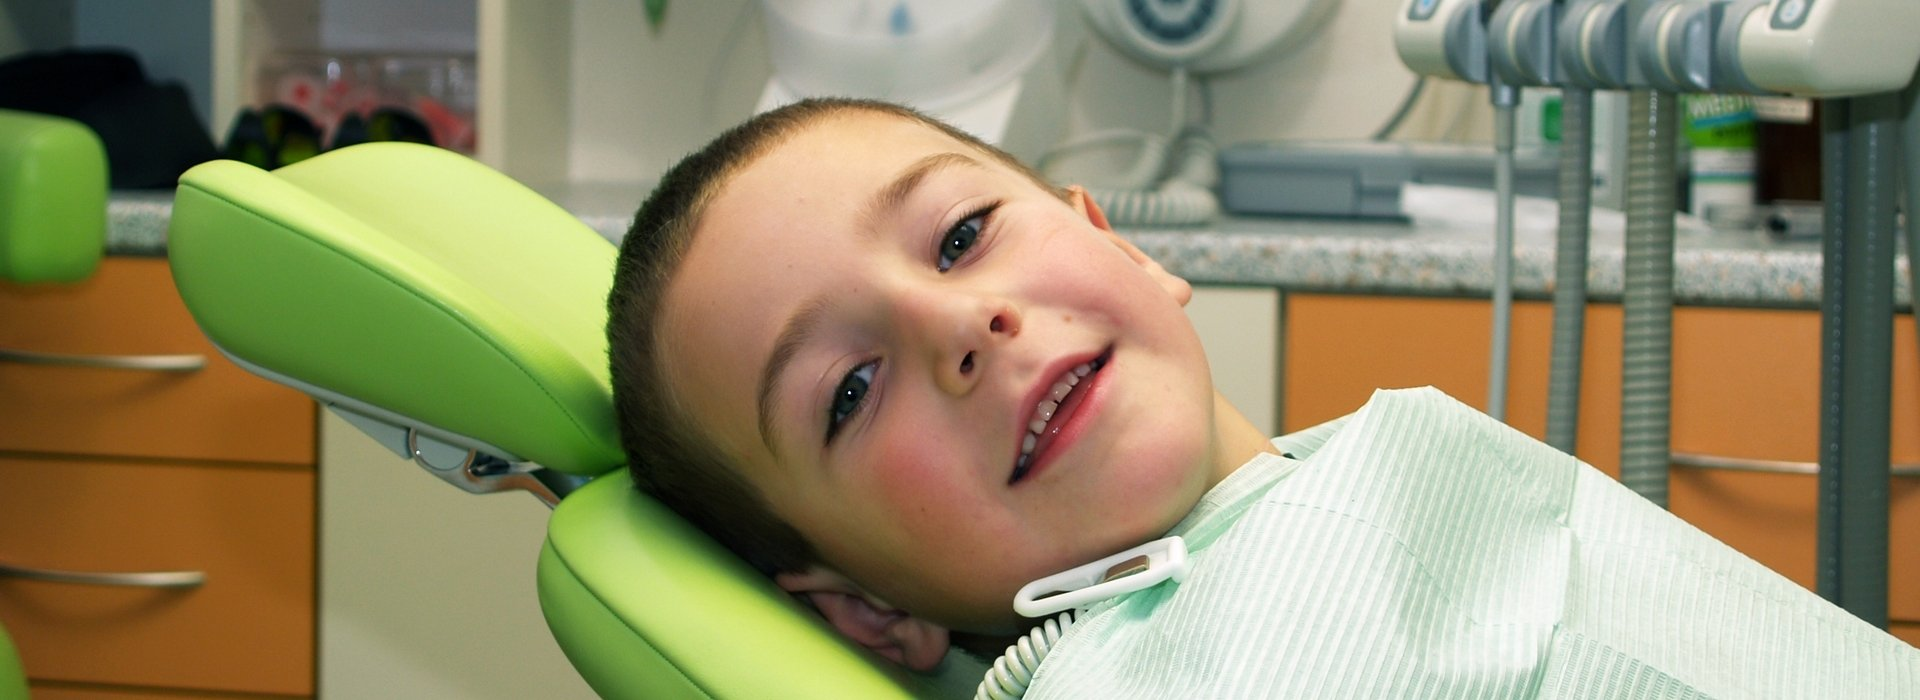 Children's dentistry in Budapest – Budapest dental treatment